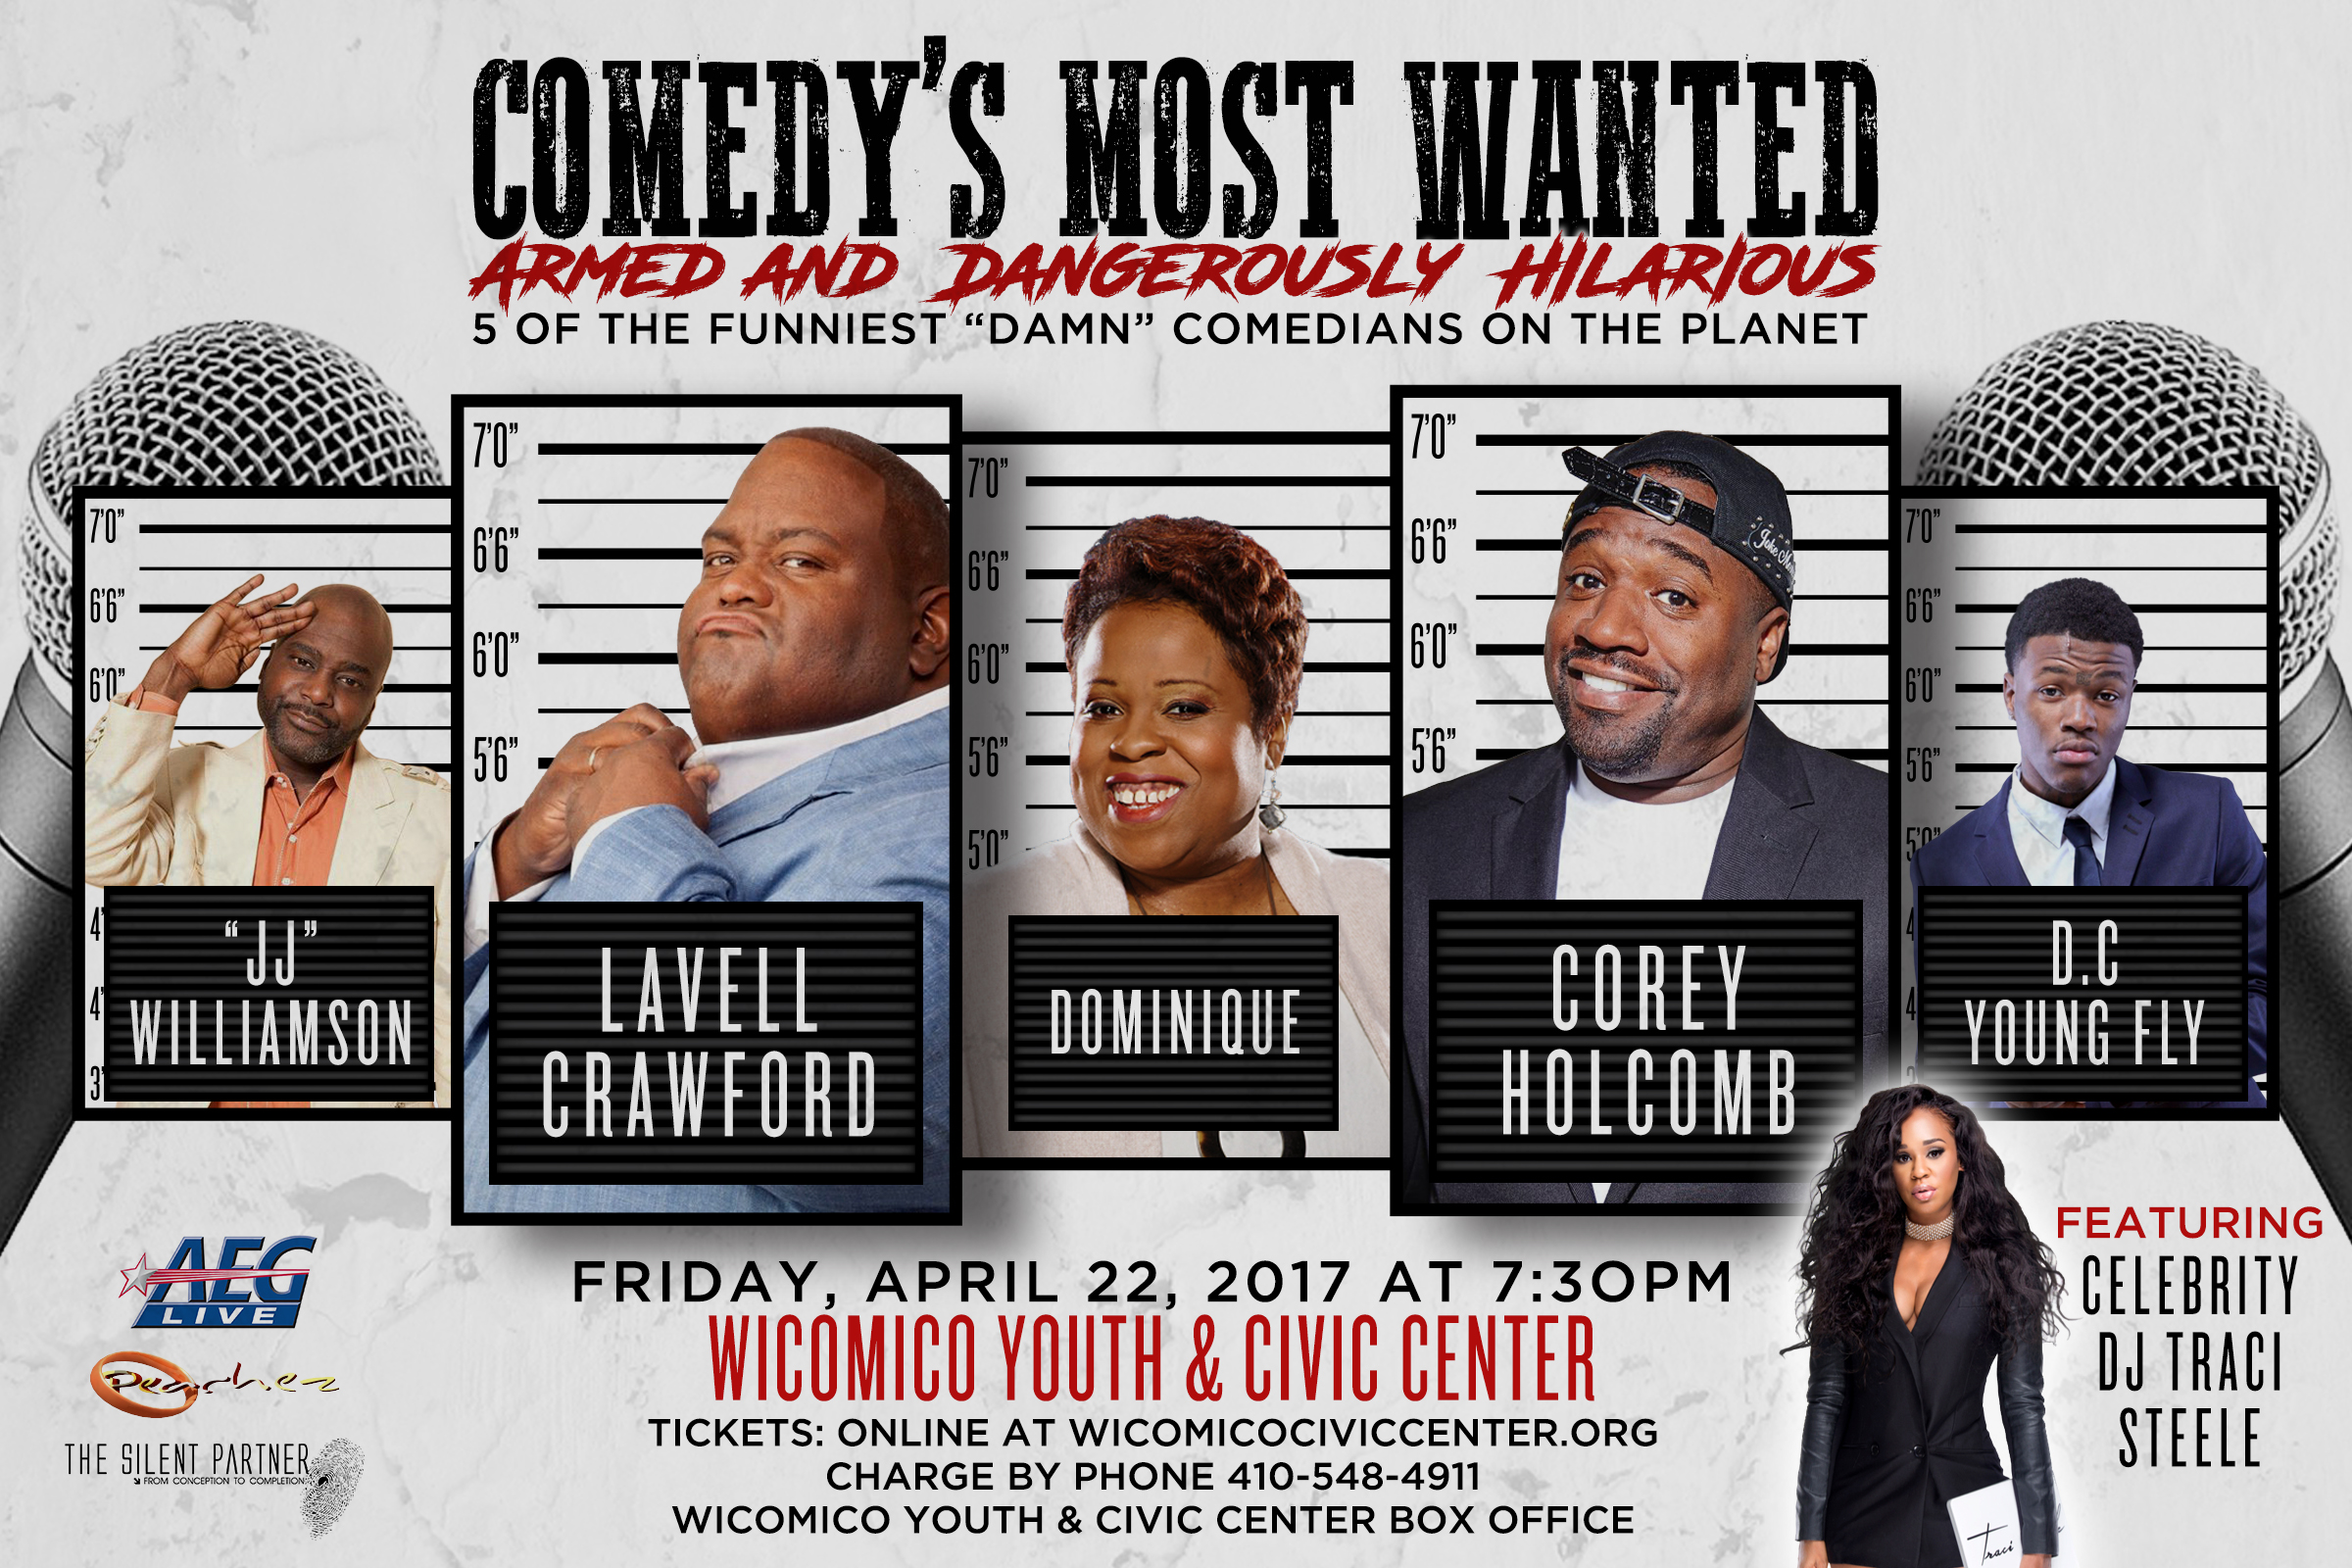 The Comedy's Most Wanted tour poster